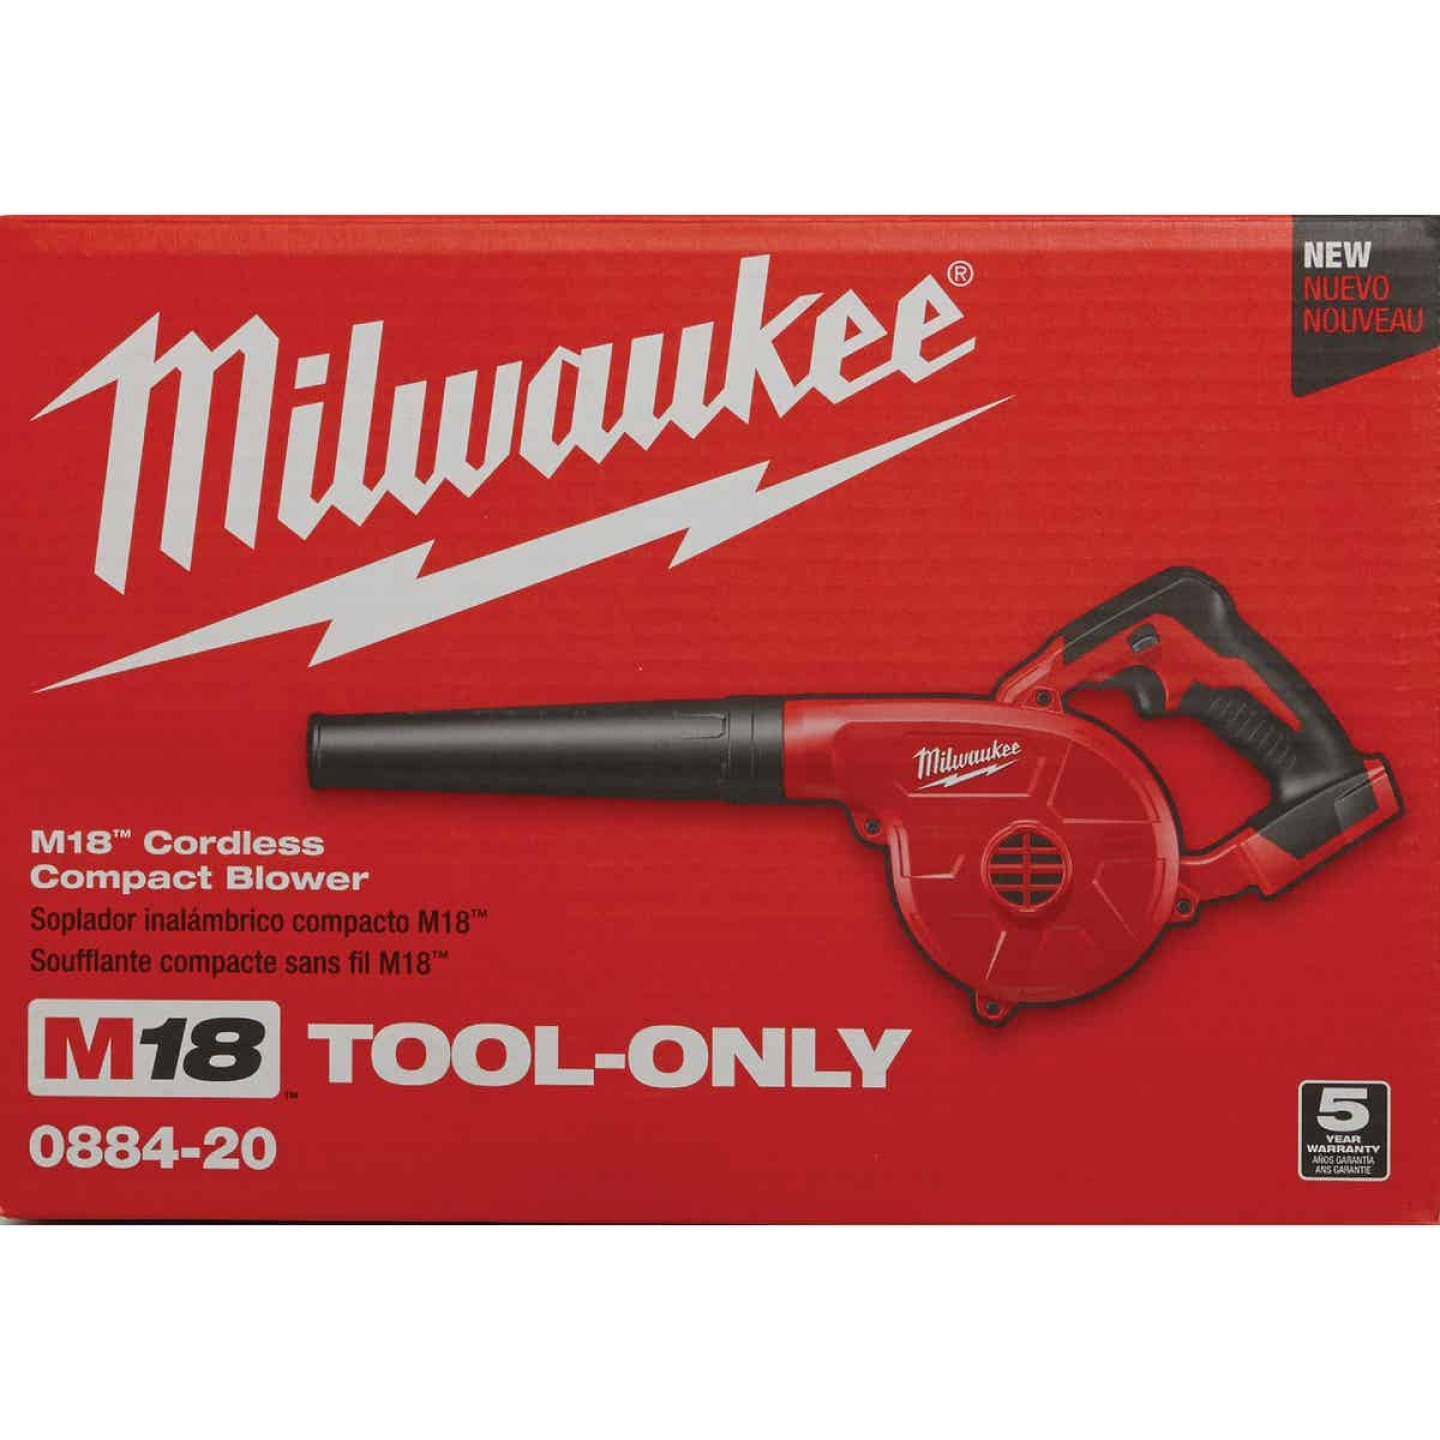 Milwaukee M18 160 MPH 18V Compact Lithium-Ion Cordless Blower (Bare Tool) Image 5